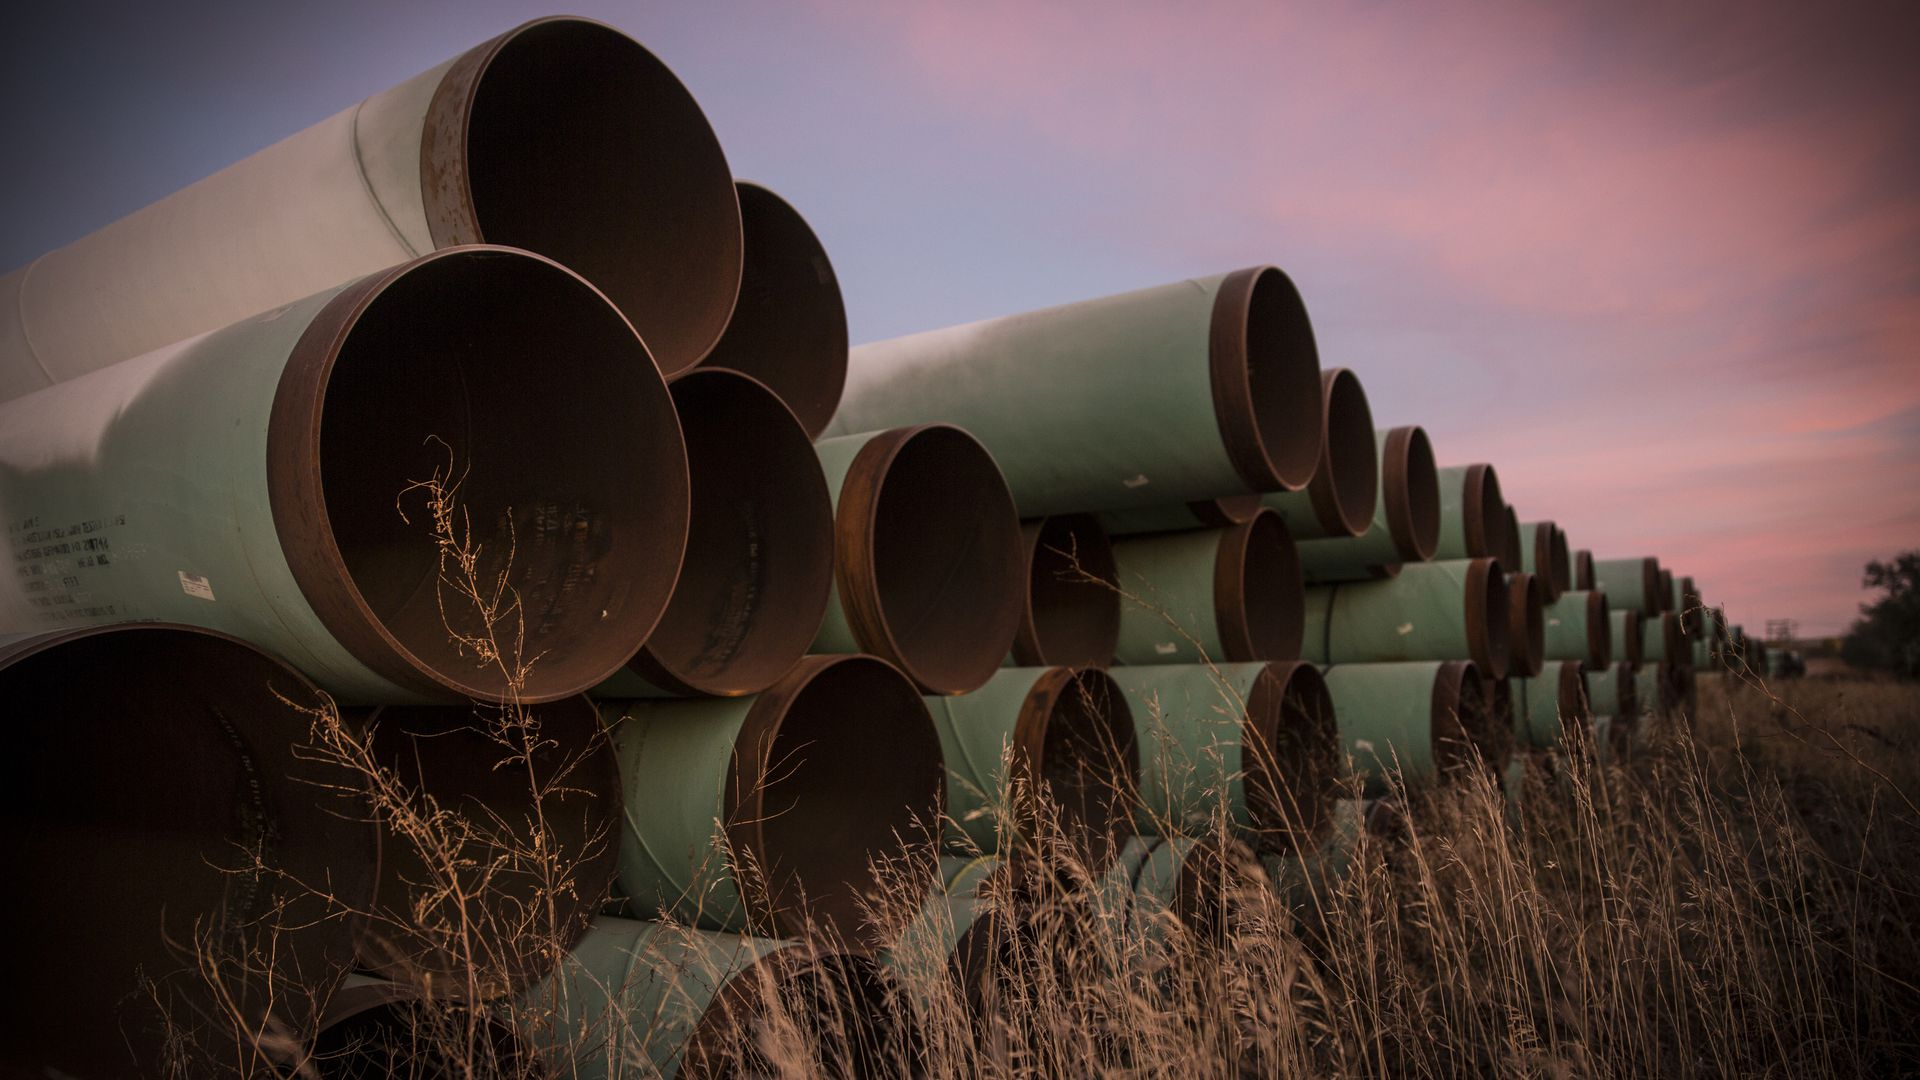 Miles of unused pipe, prepared for the proposed Keystone XL pipeline.